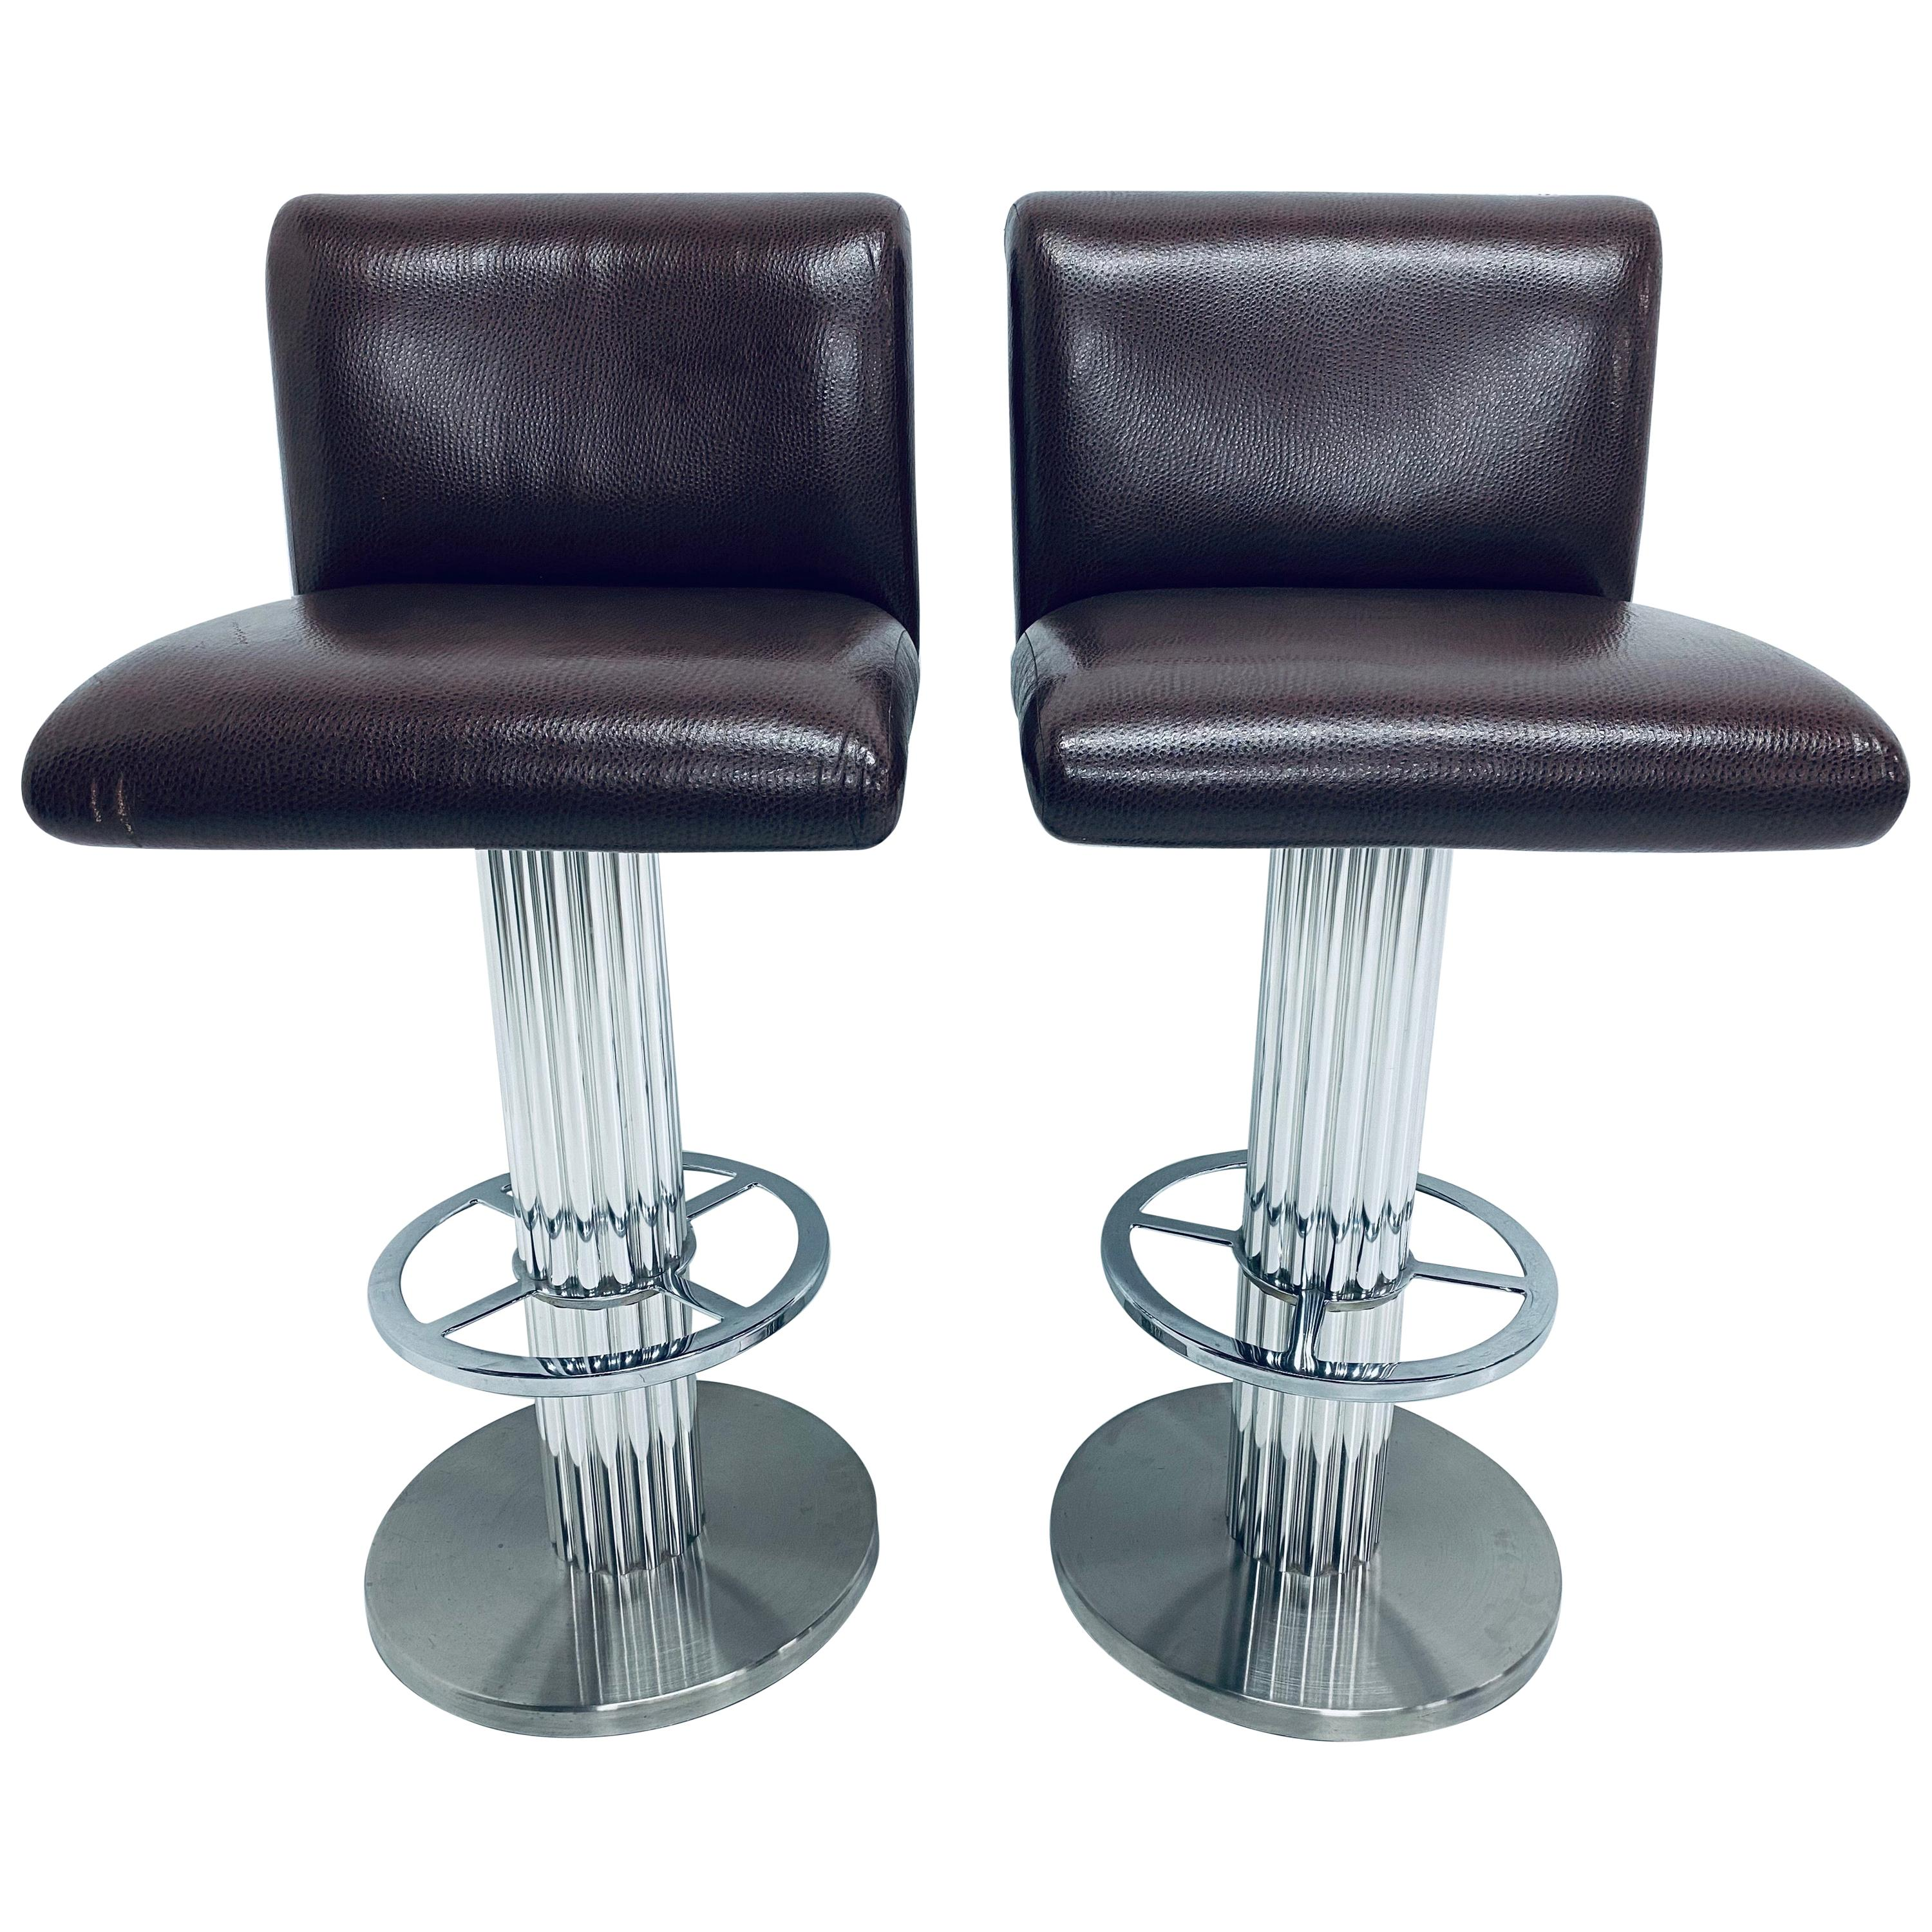 Pair of Designs for Leisure Faux Brown Leather and Fur Bar Stools, 1970s